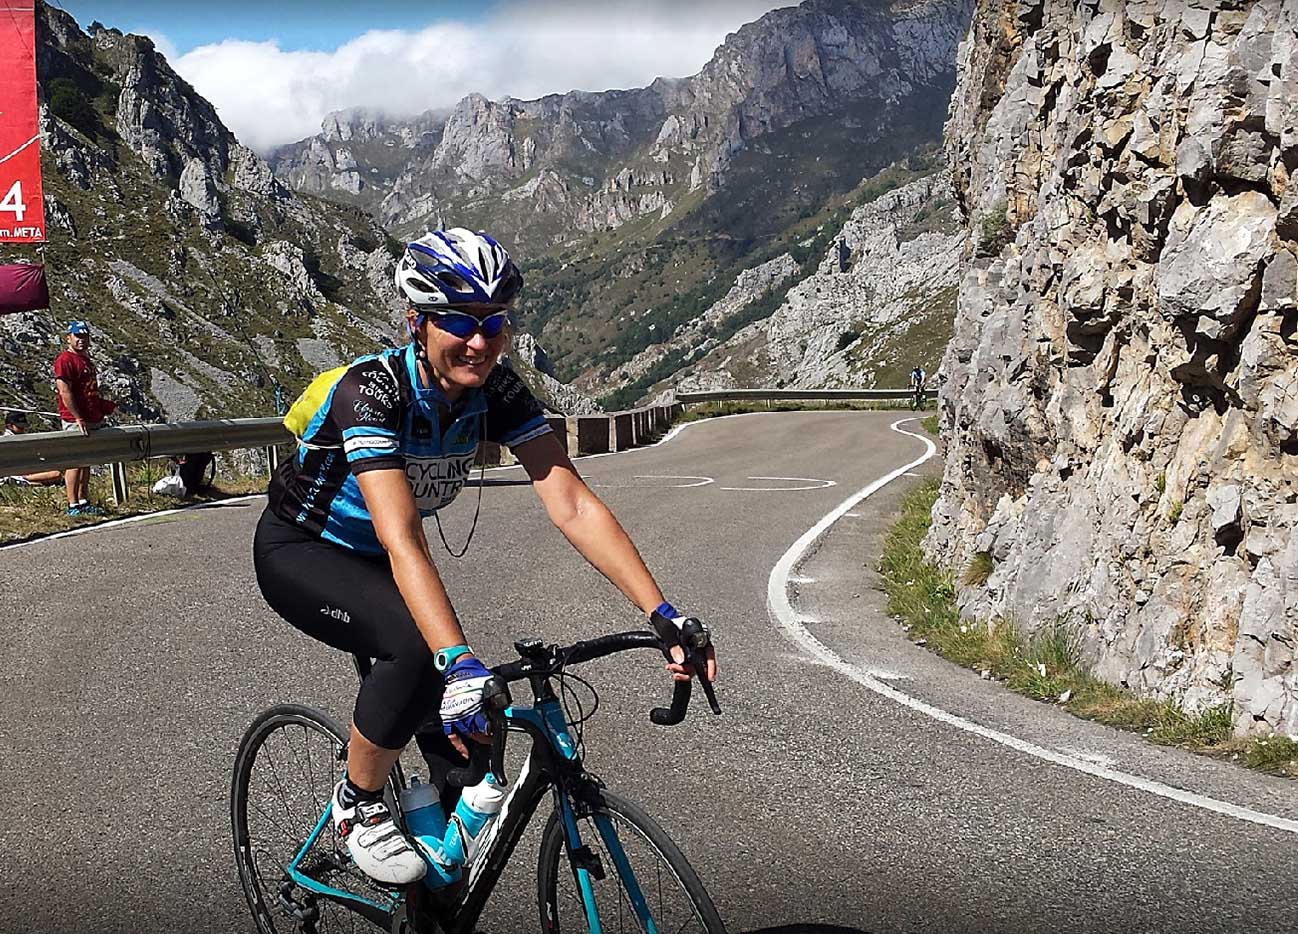 Riding the Best Cycling Climbs at La Vuelta only hours before the peloton